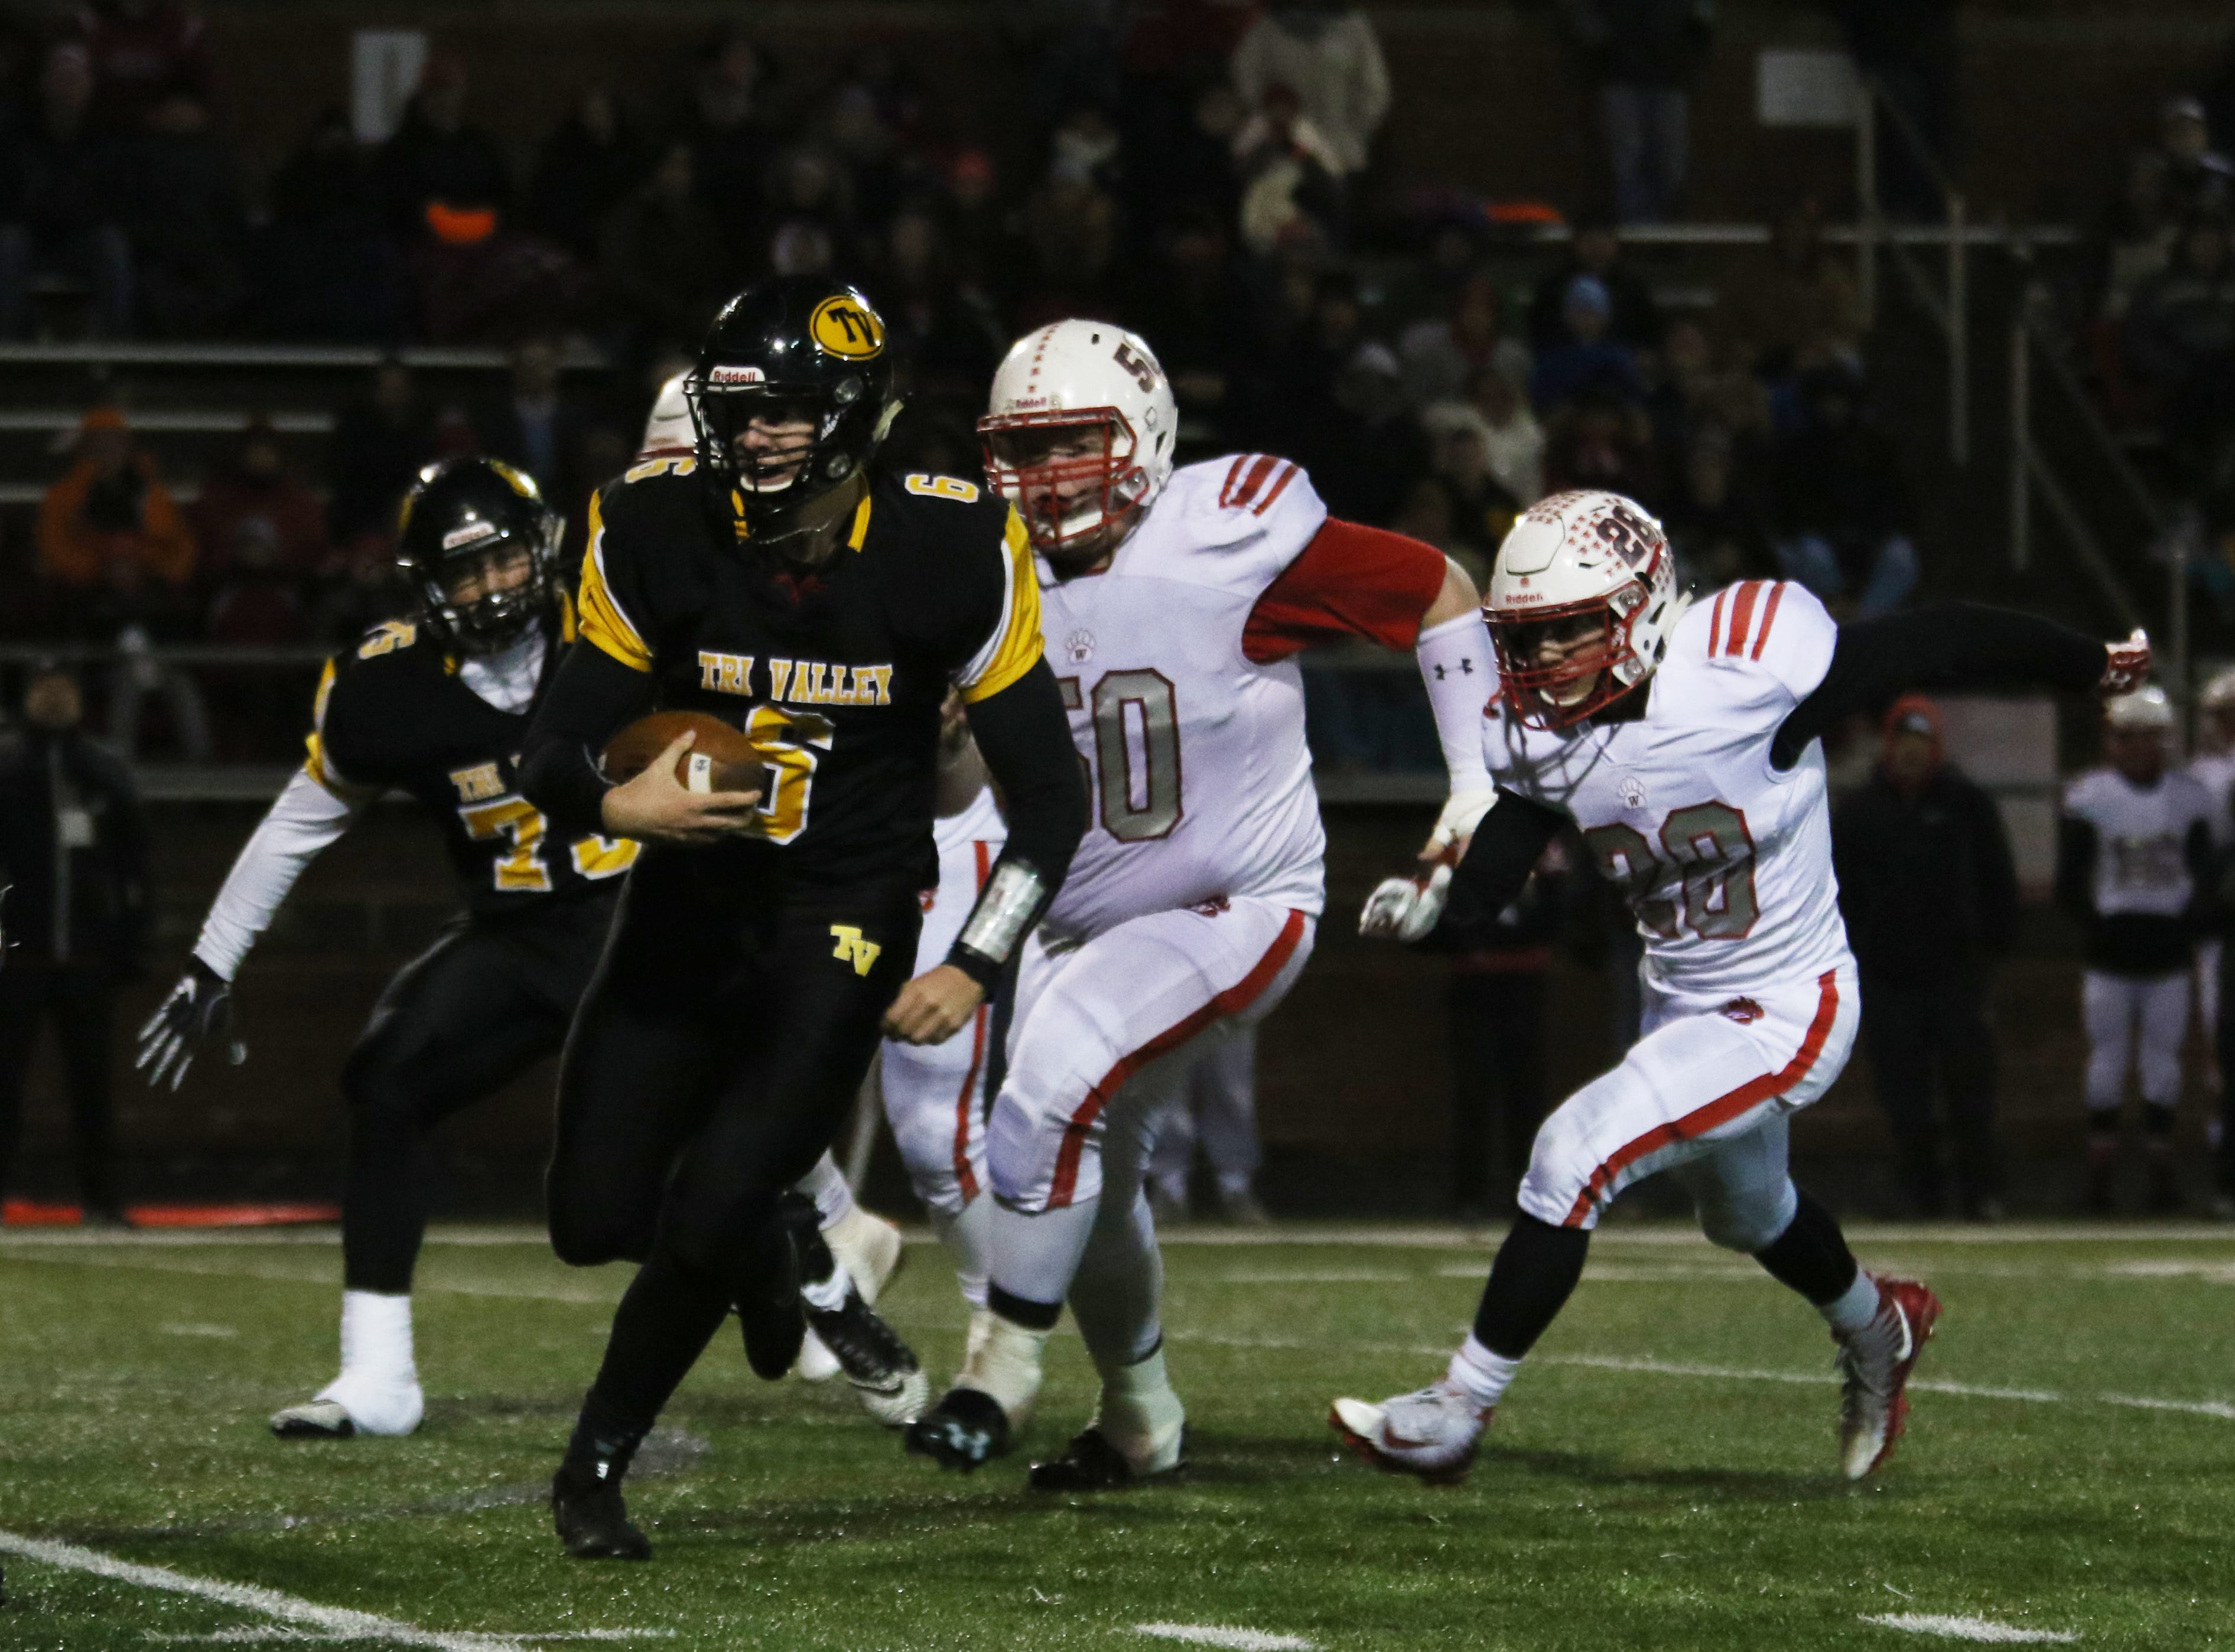 Tri-Valley's Luke Fargus carries the ball against Wadsworth.